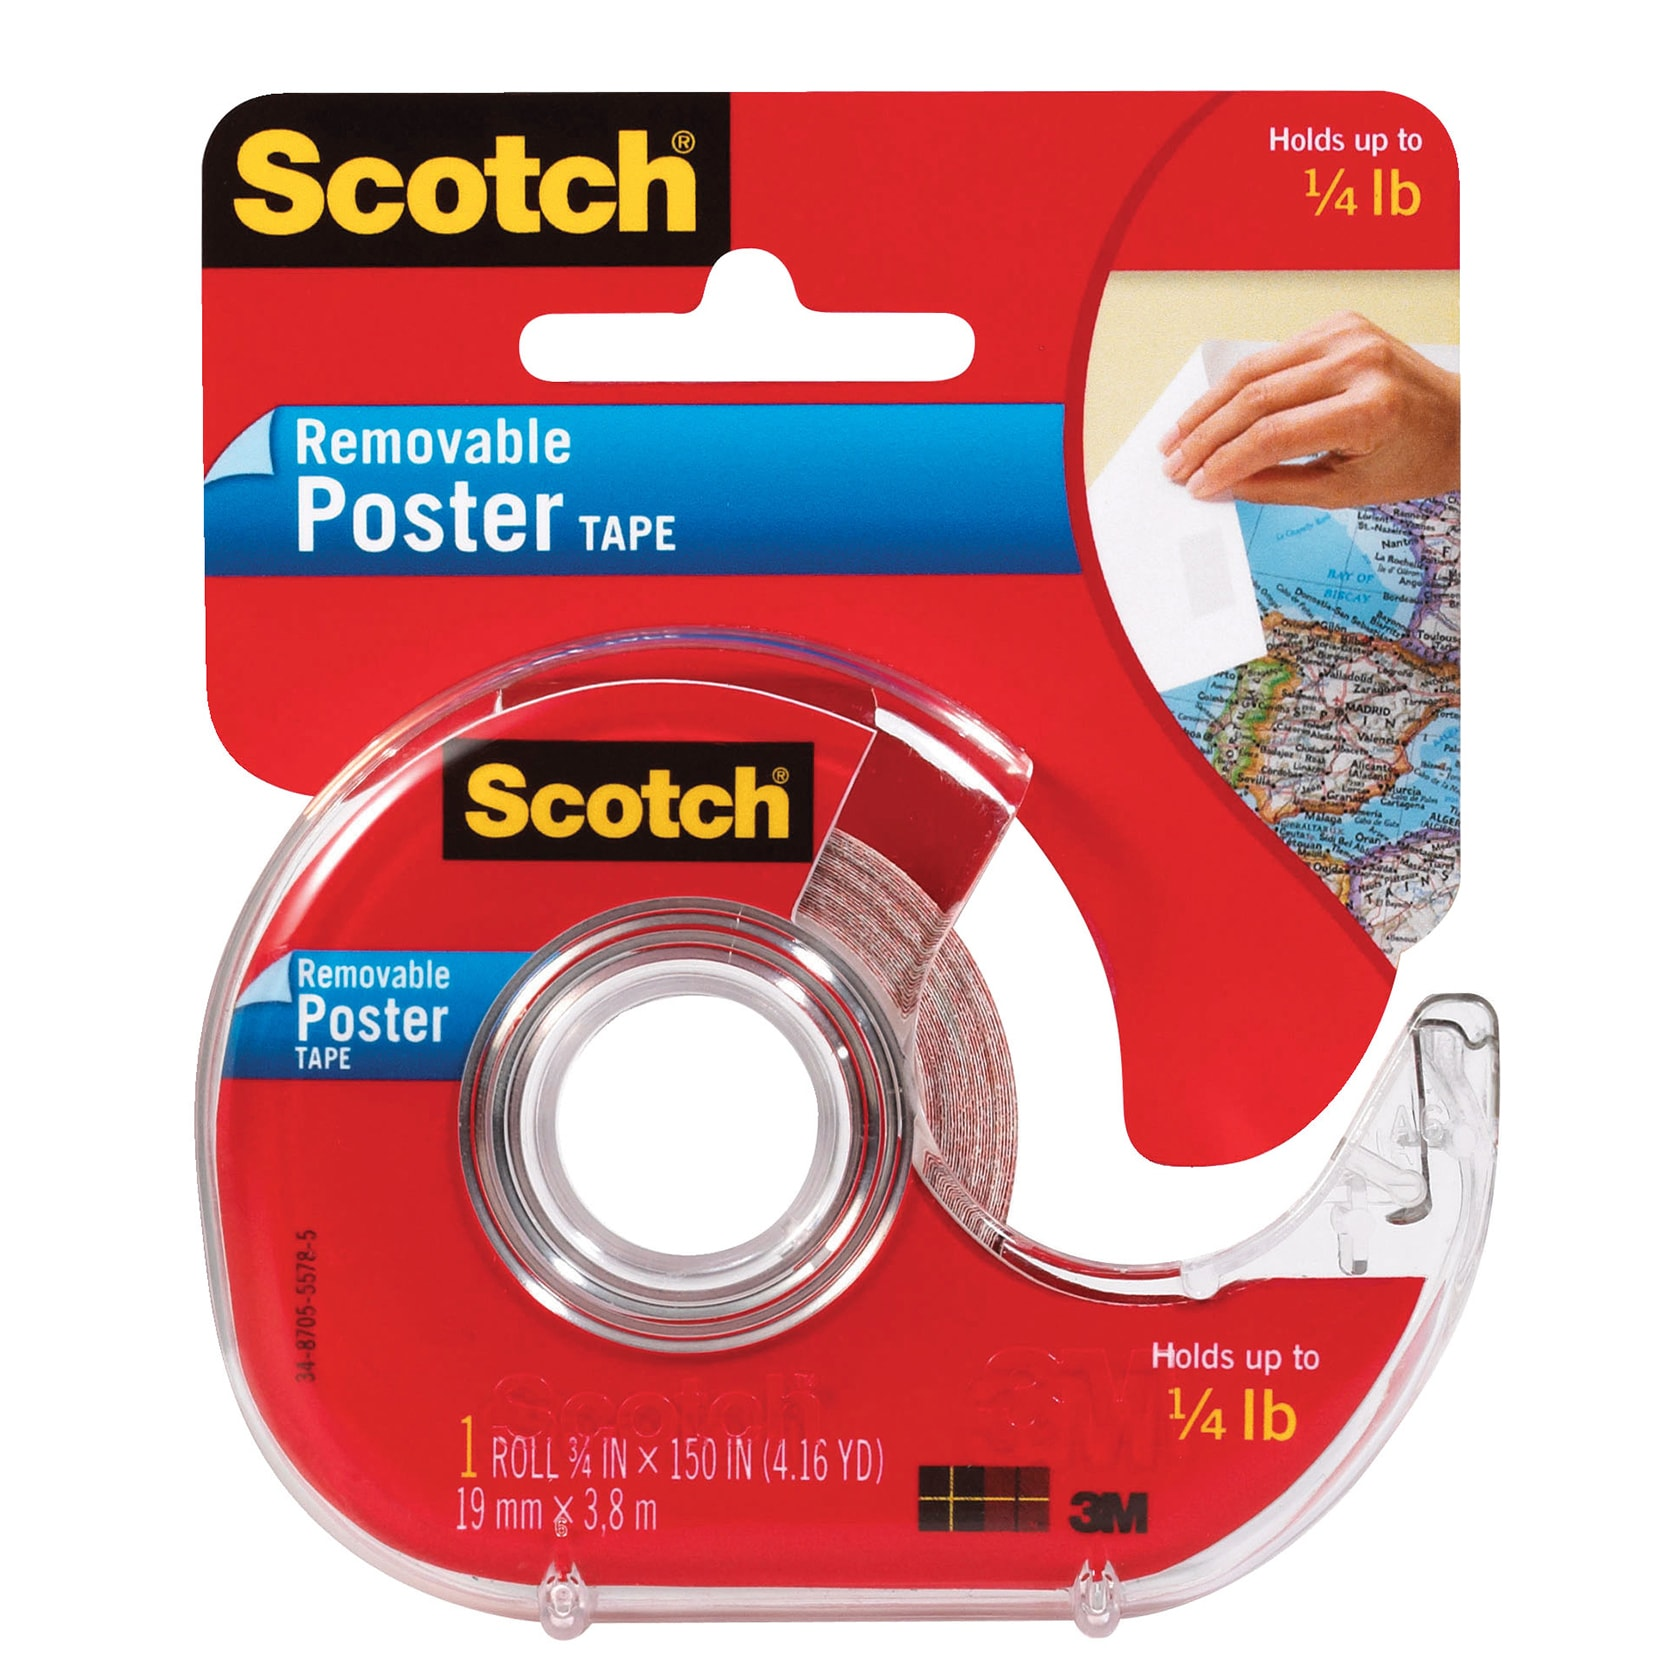 3M Scotch Removable Poster Tape at Sears.com